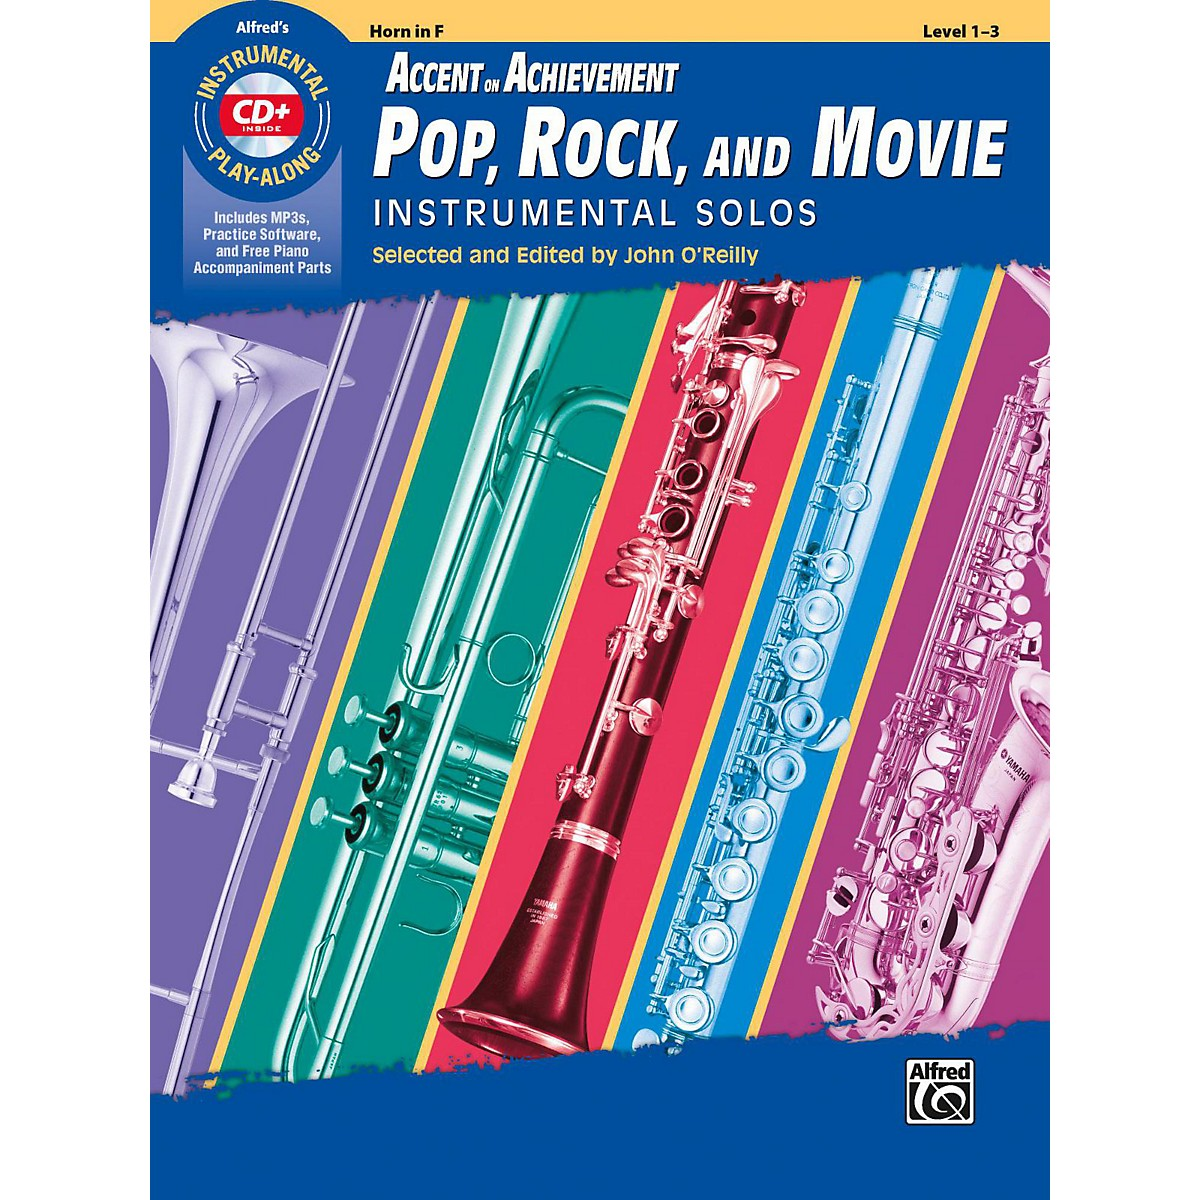 Alfred Accent on Achievement Pop, Rock, and Movie Instrumental Solos Horn in F Book & CD